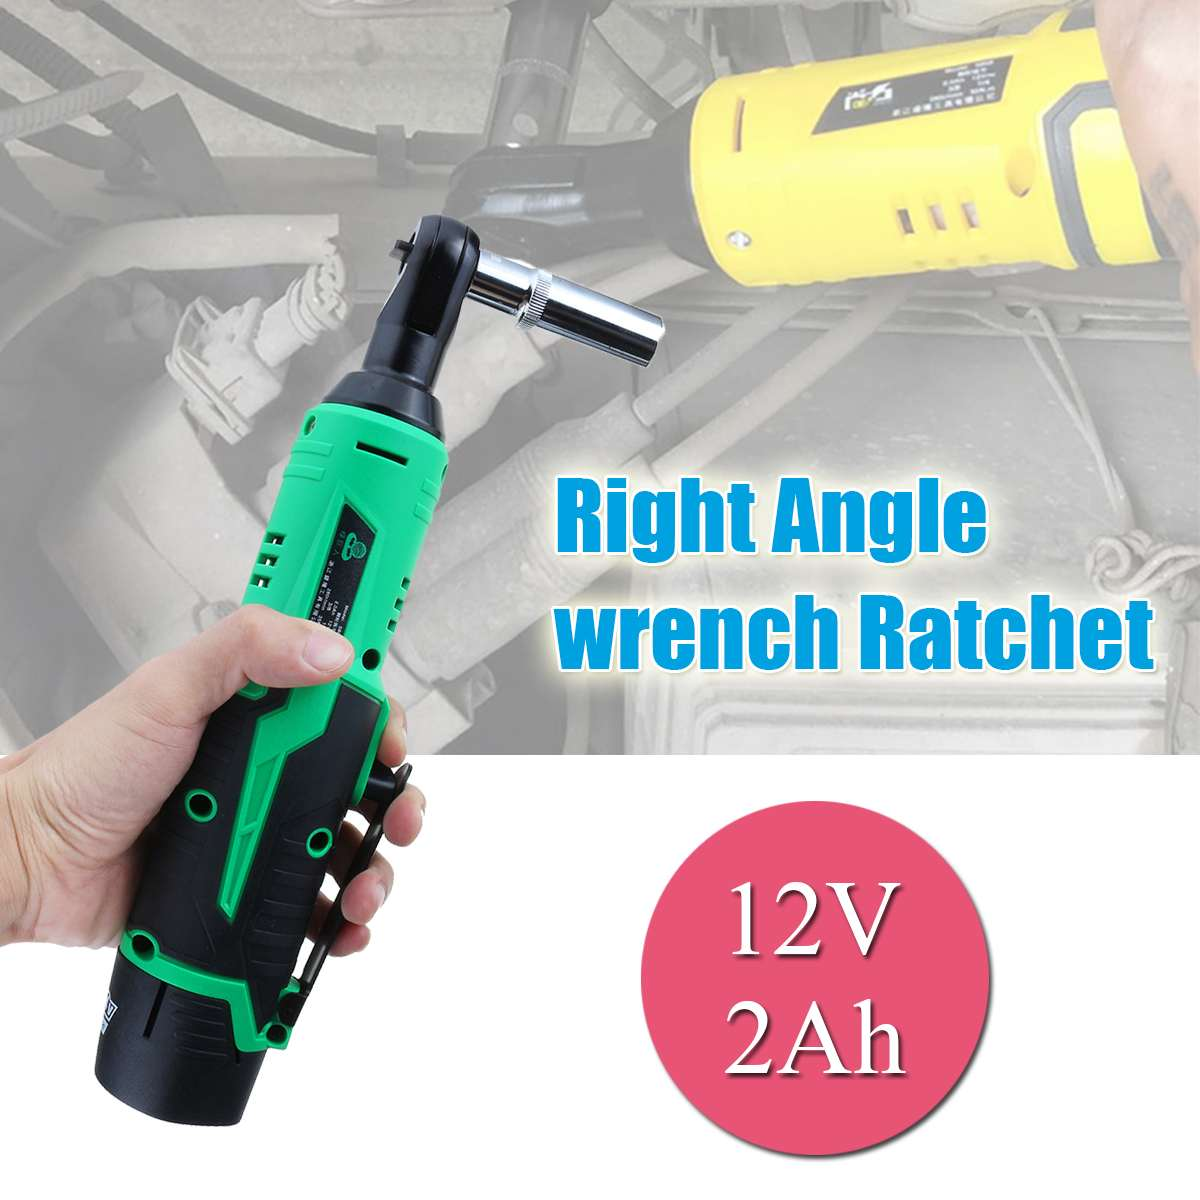 12V Electric Ratchet Wrench 35NM Torque 3/8 inch Cordless Wrench 2000mAh Rechargeable Lithium Battery Car Repair Power Tools12V Electric Ratchet Wrench 35NM Torque 3/8 inch Cordless Wrench 2000mAh Rechargeable Lithium Battery Car Repair Power Tools